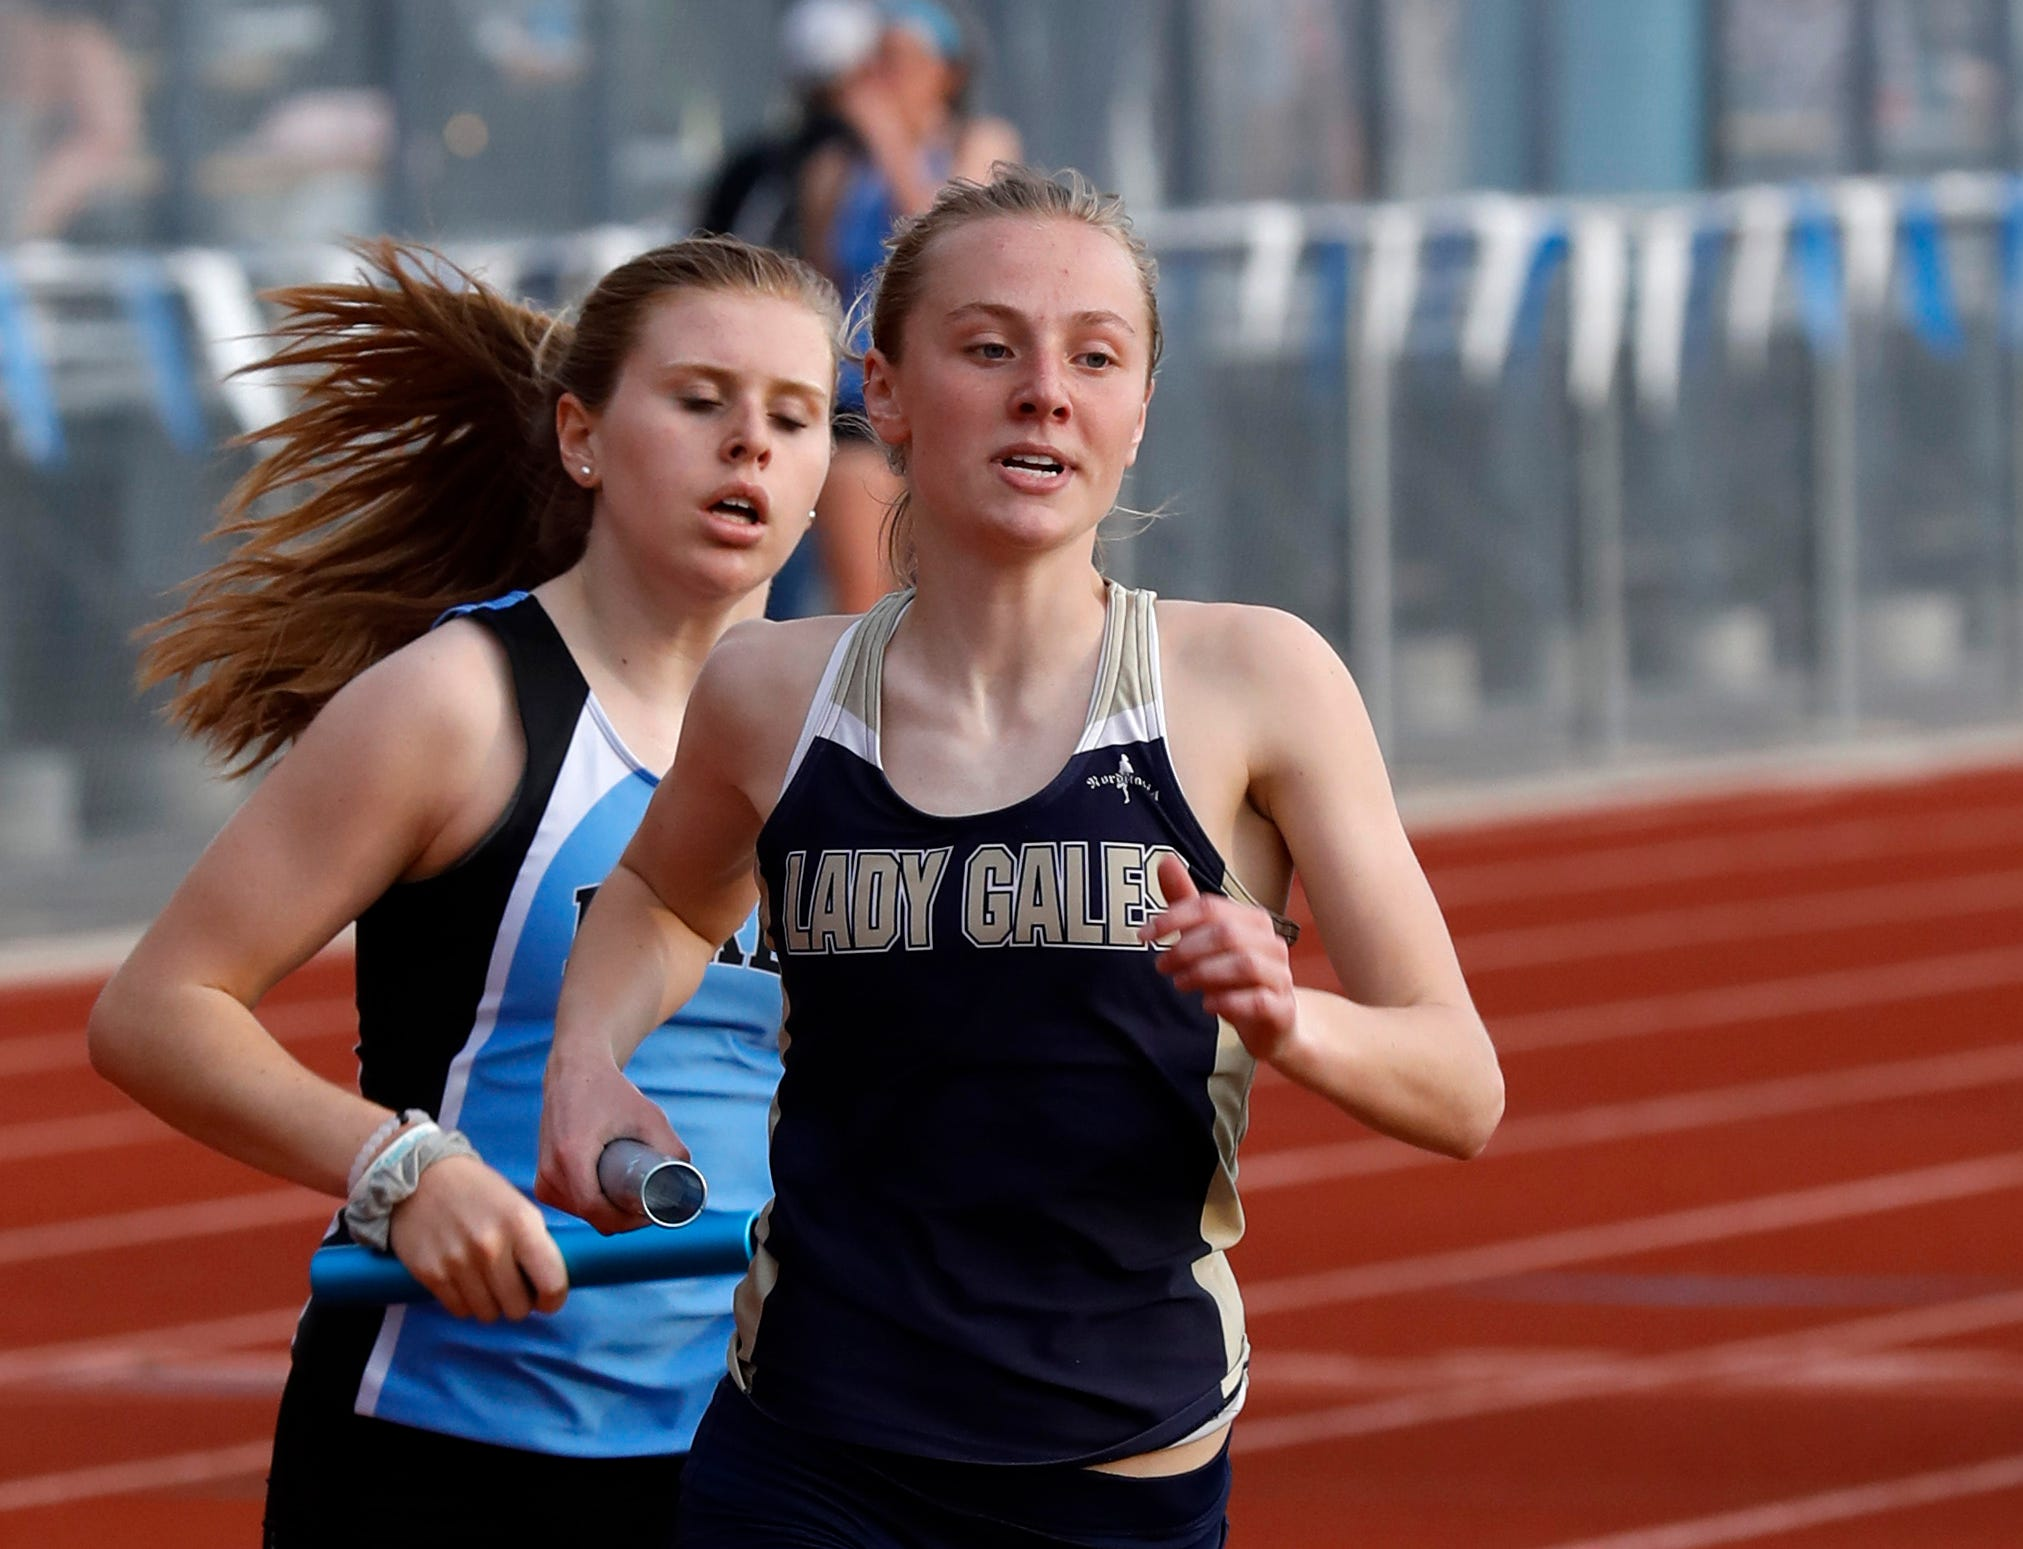 Lancaster's Elise Johnson runs in the 3200-meter relay Thursday night, April 18, 2019, during the Fulton Relays at Lancaster High School in Lancaster.